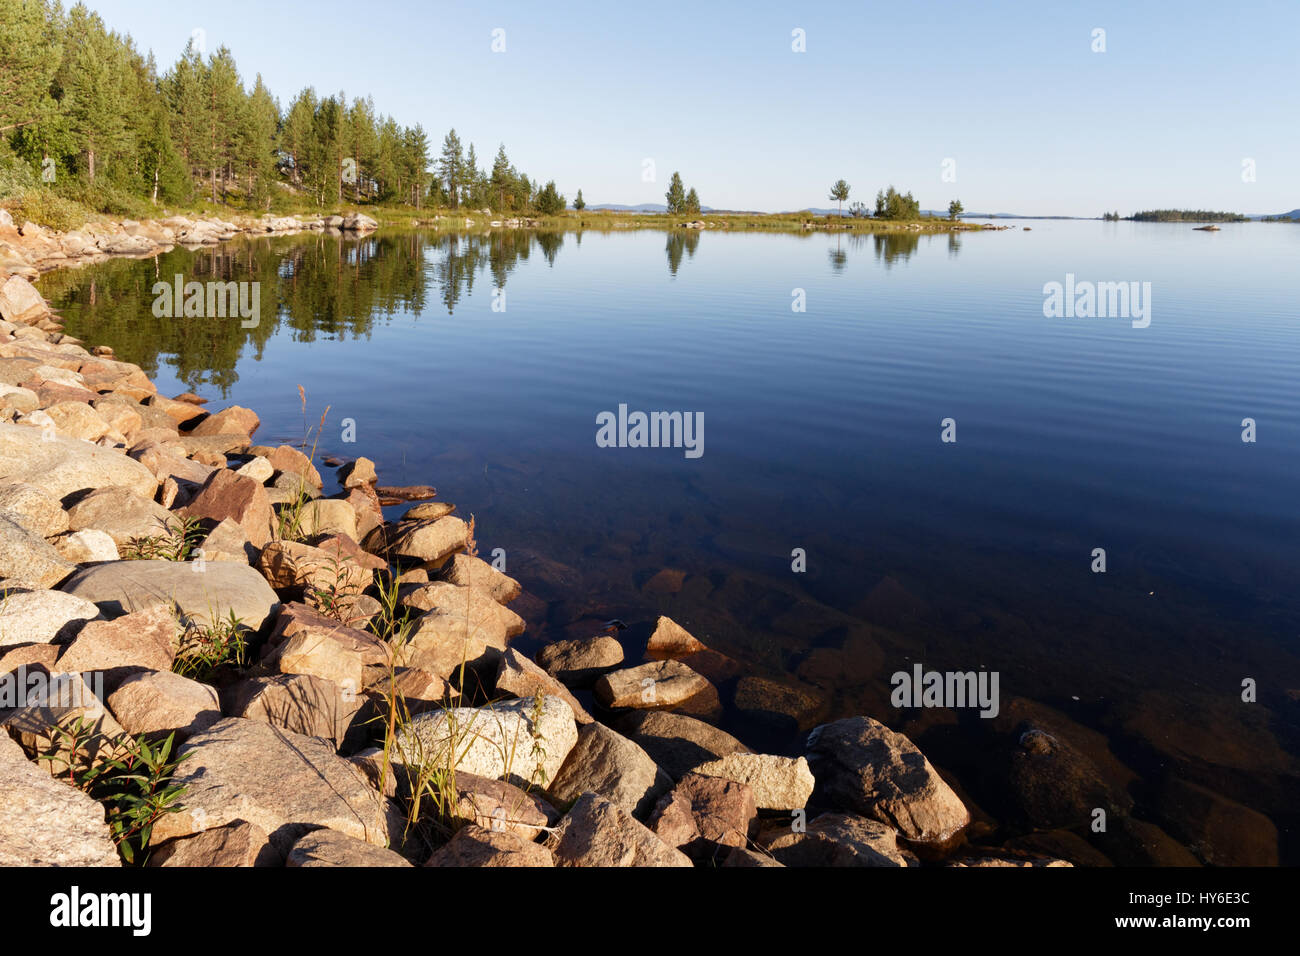 Calm, summer lake in Lappland in Northern Sweden - Stock Image